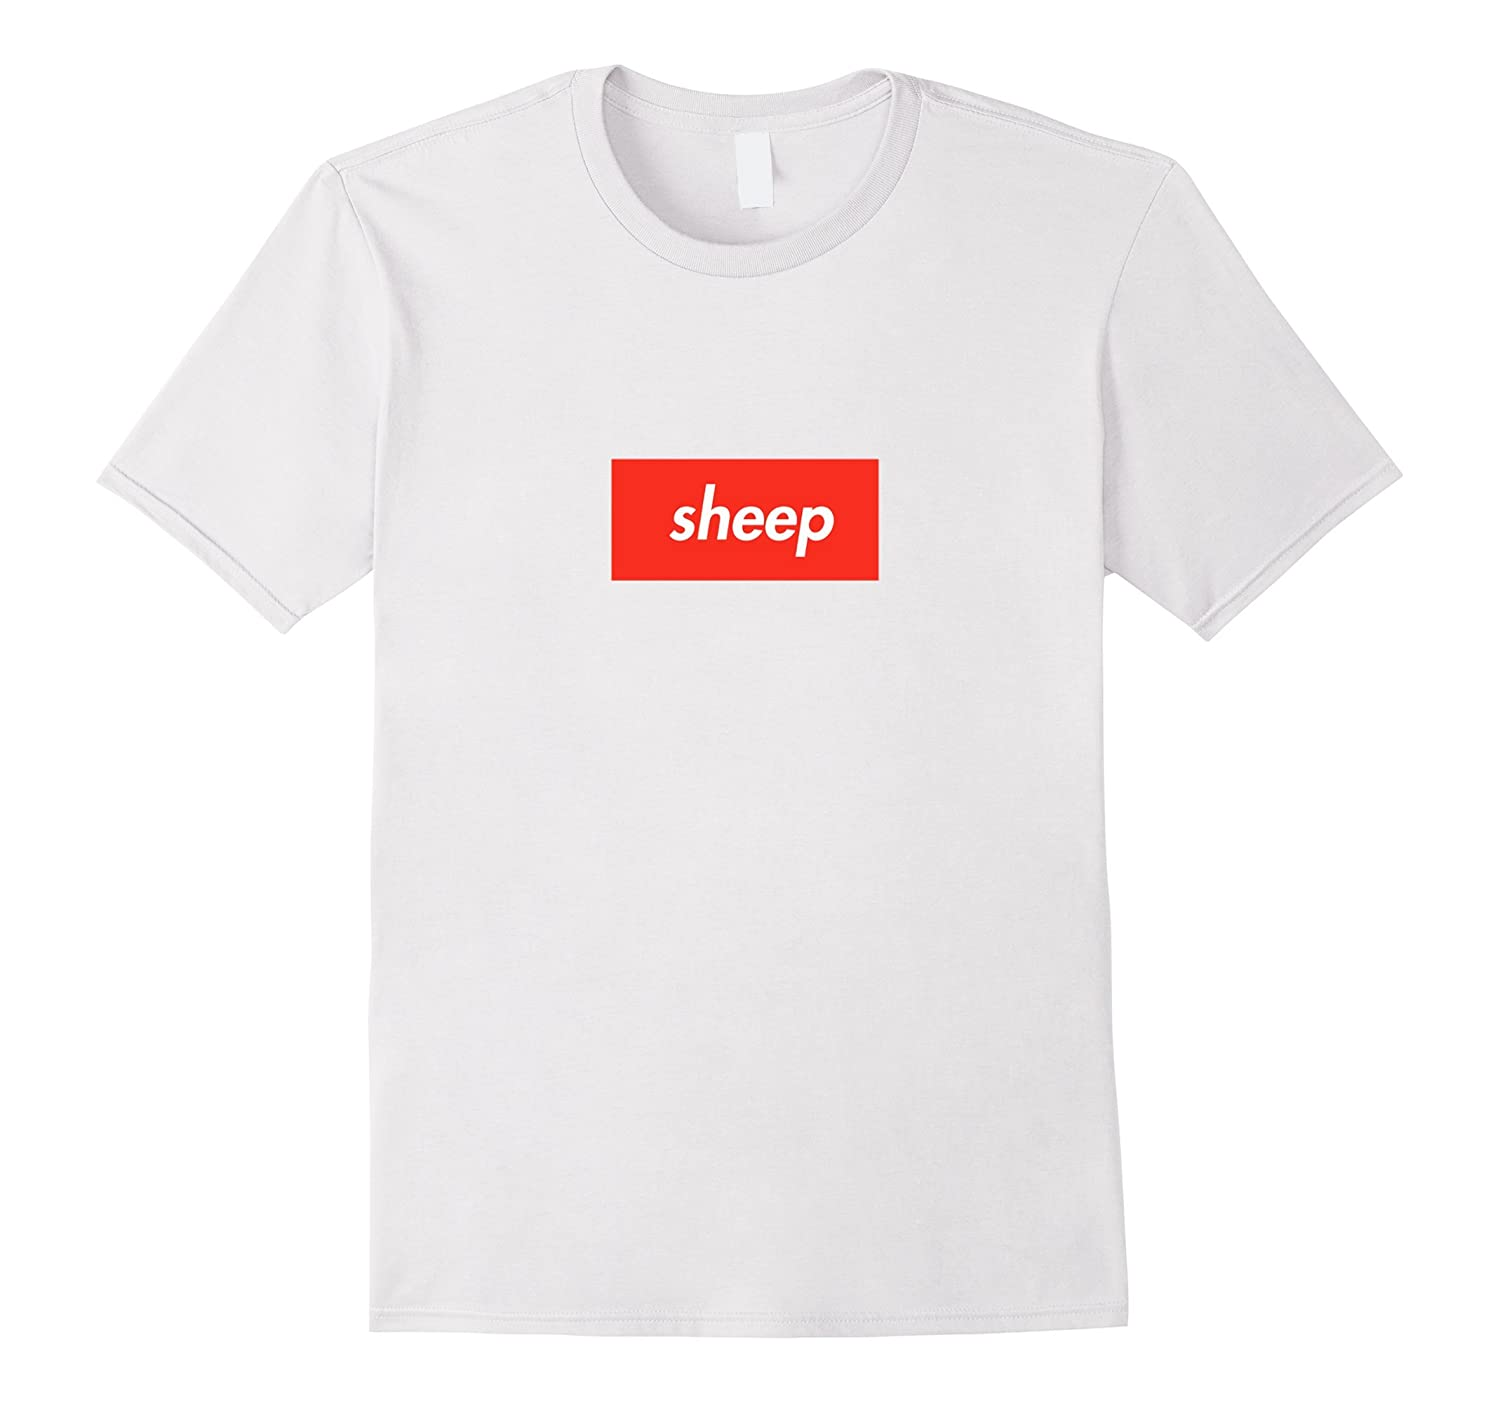 Sheep T-Shirt - Red Box White Letters-SFS